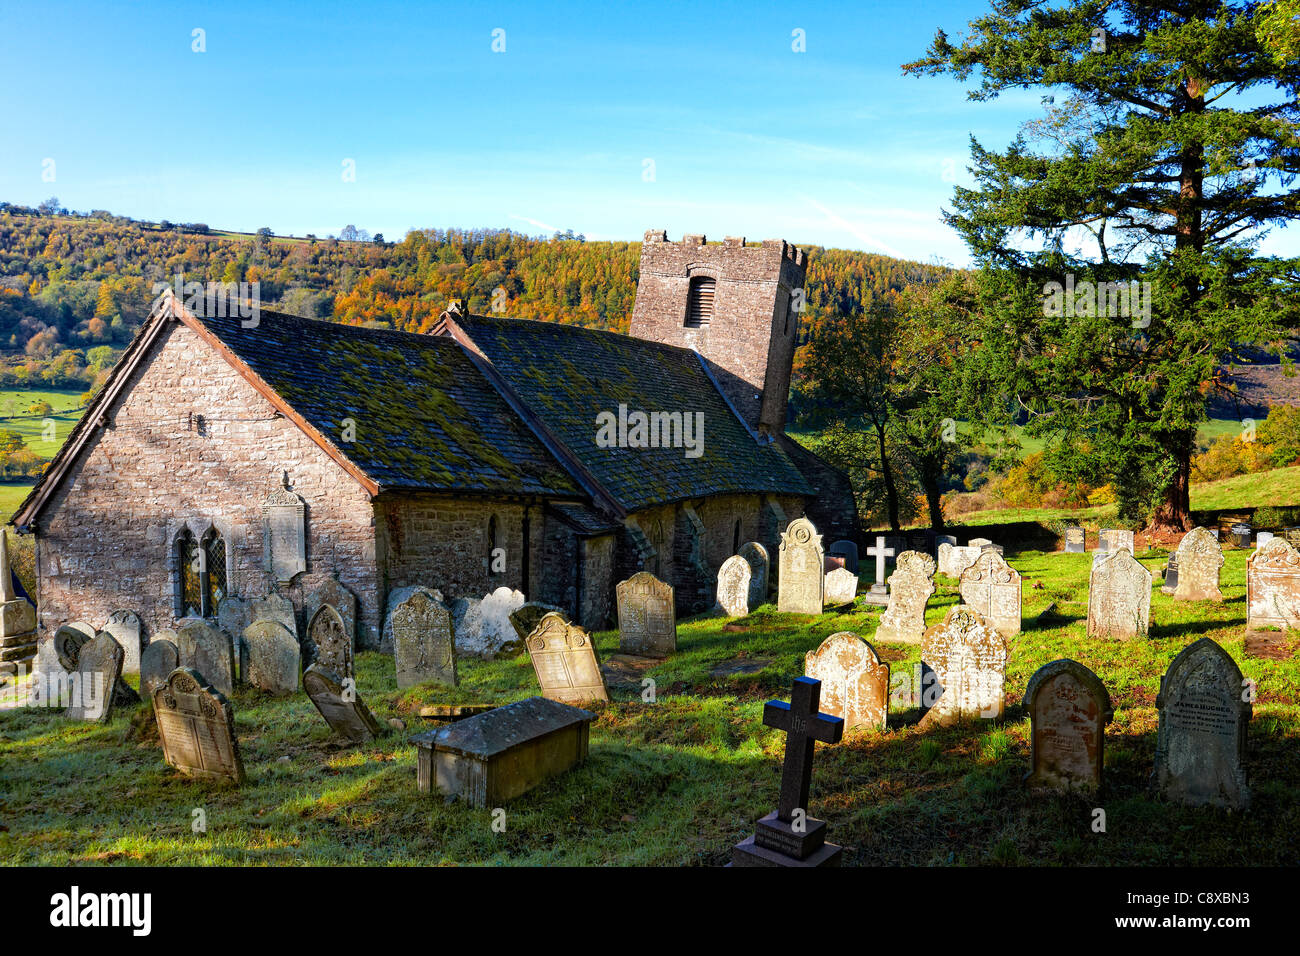 Cwmyoy church in the Vale of Ewyas, Brecon Beacons National Park. It has been described as the most crooked church - Stock Image